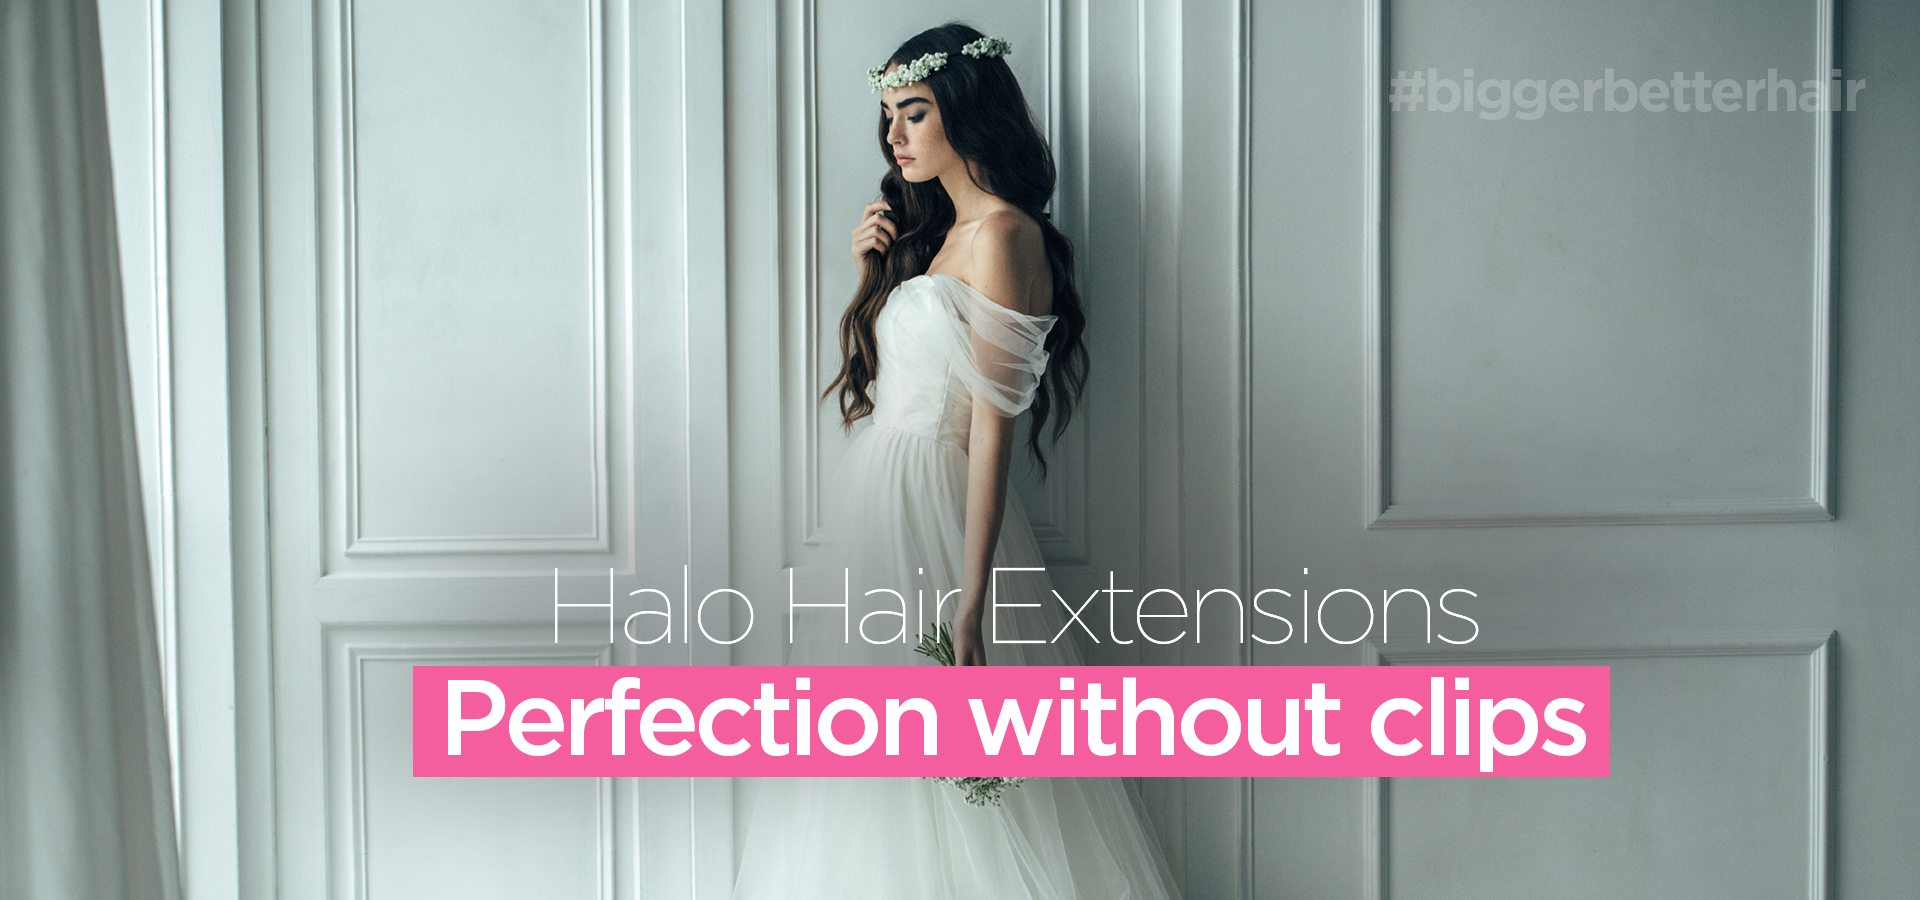 Line-1-Halo-Hair-Extensions-Line-2-Perfection-without-clips-7